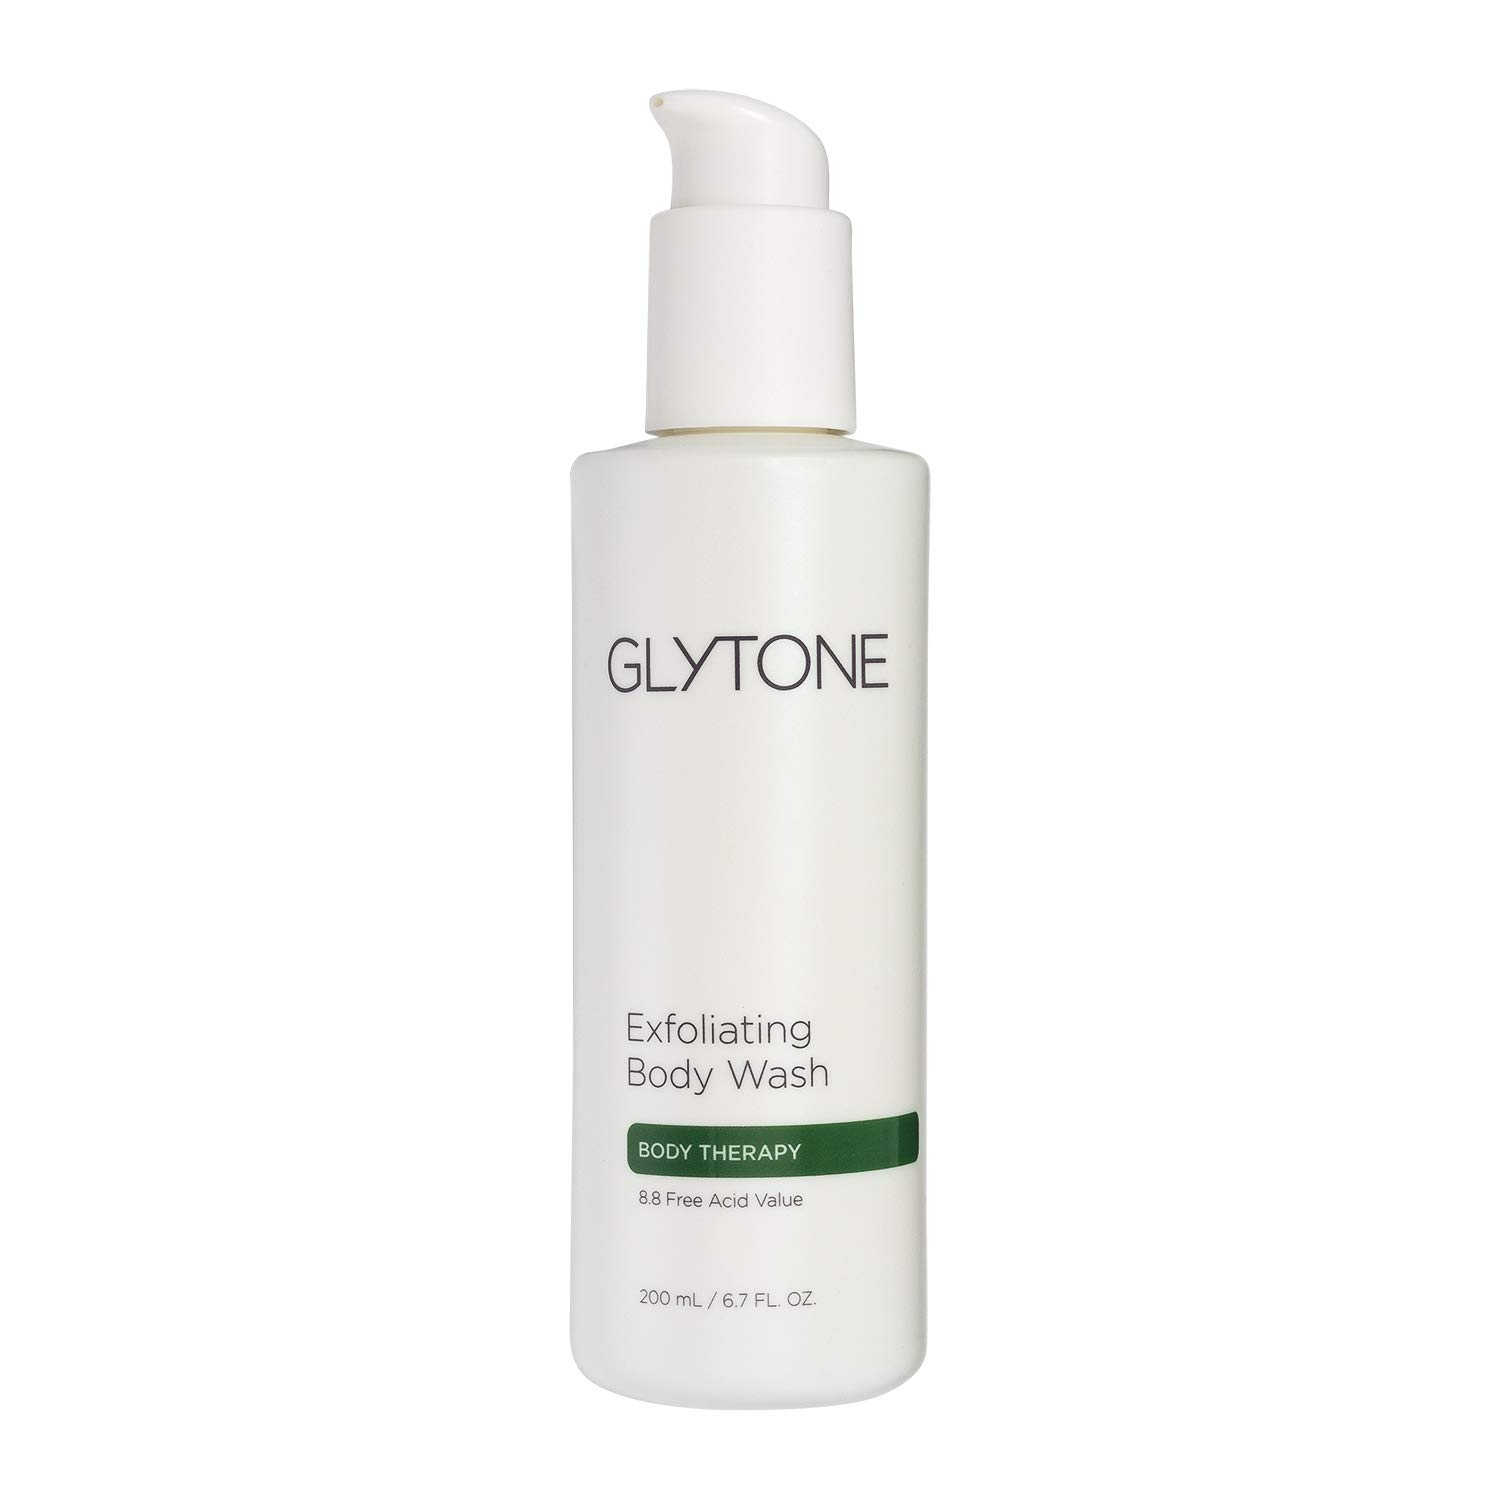 Glytone Exfoliating Body Wash with 8.8 PFAV Glycolic Acid